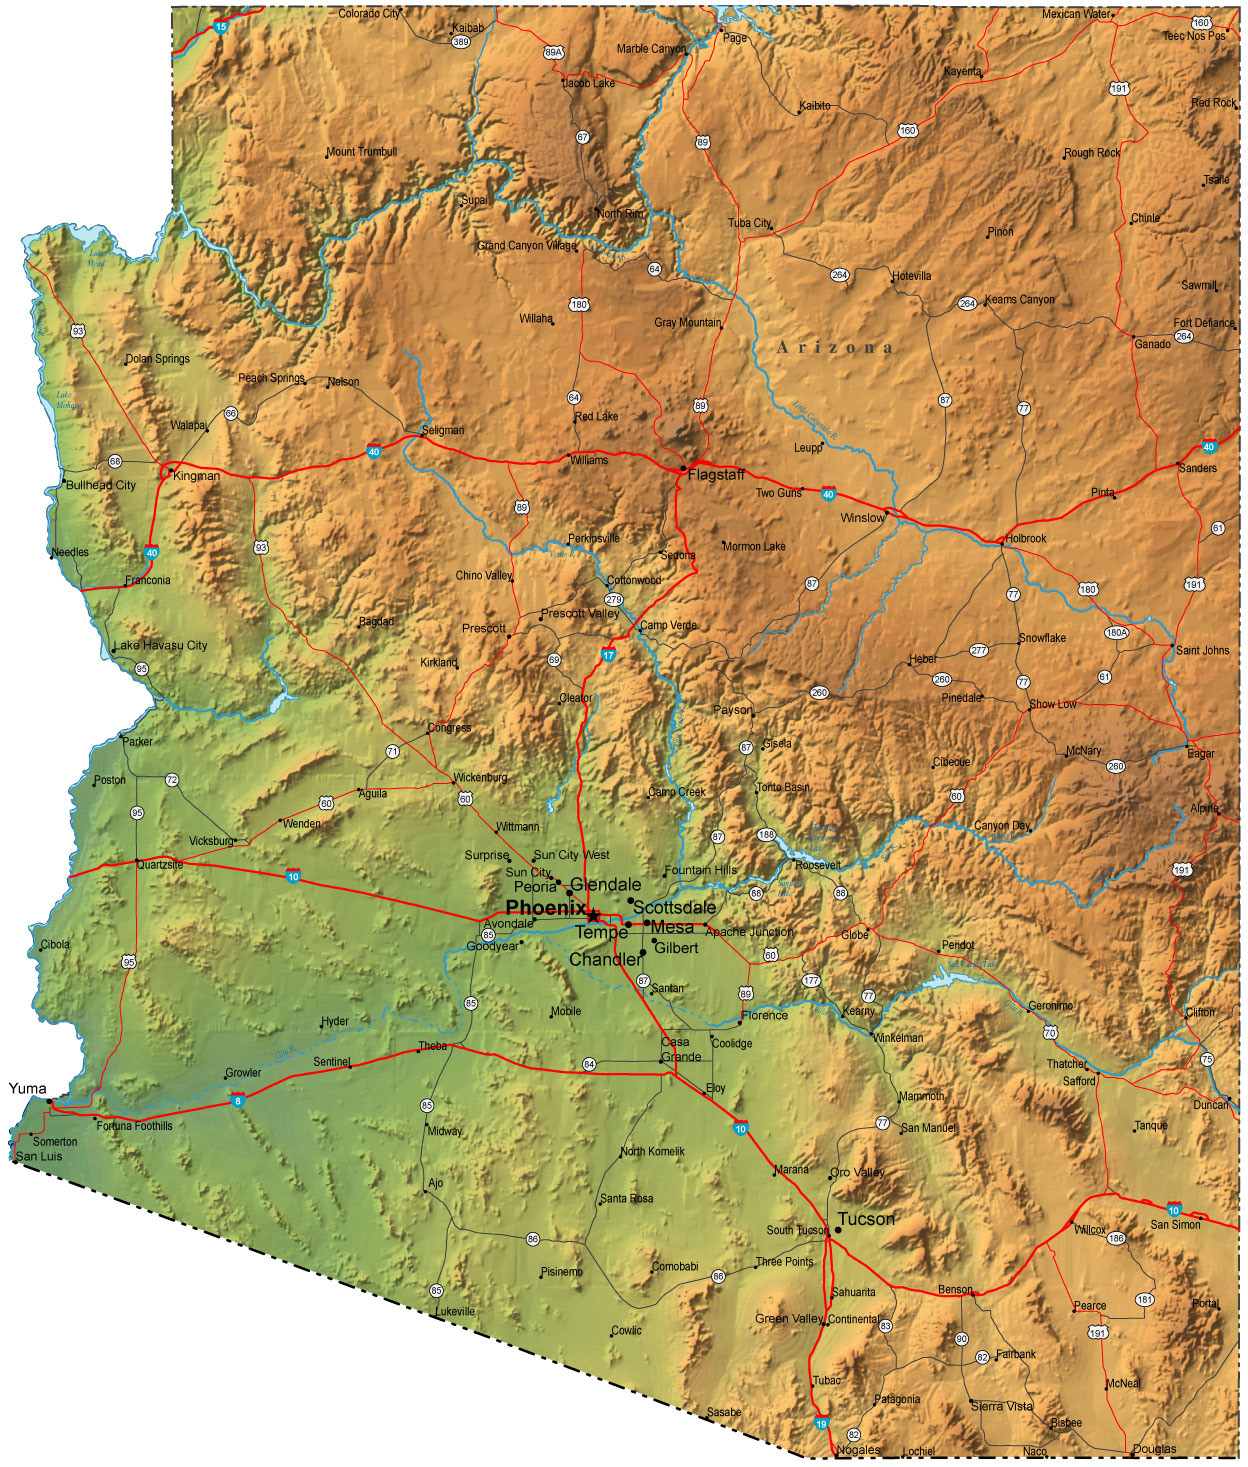 Detailed elevation map of Arizona with cities. Arizona detailed ...